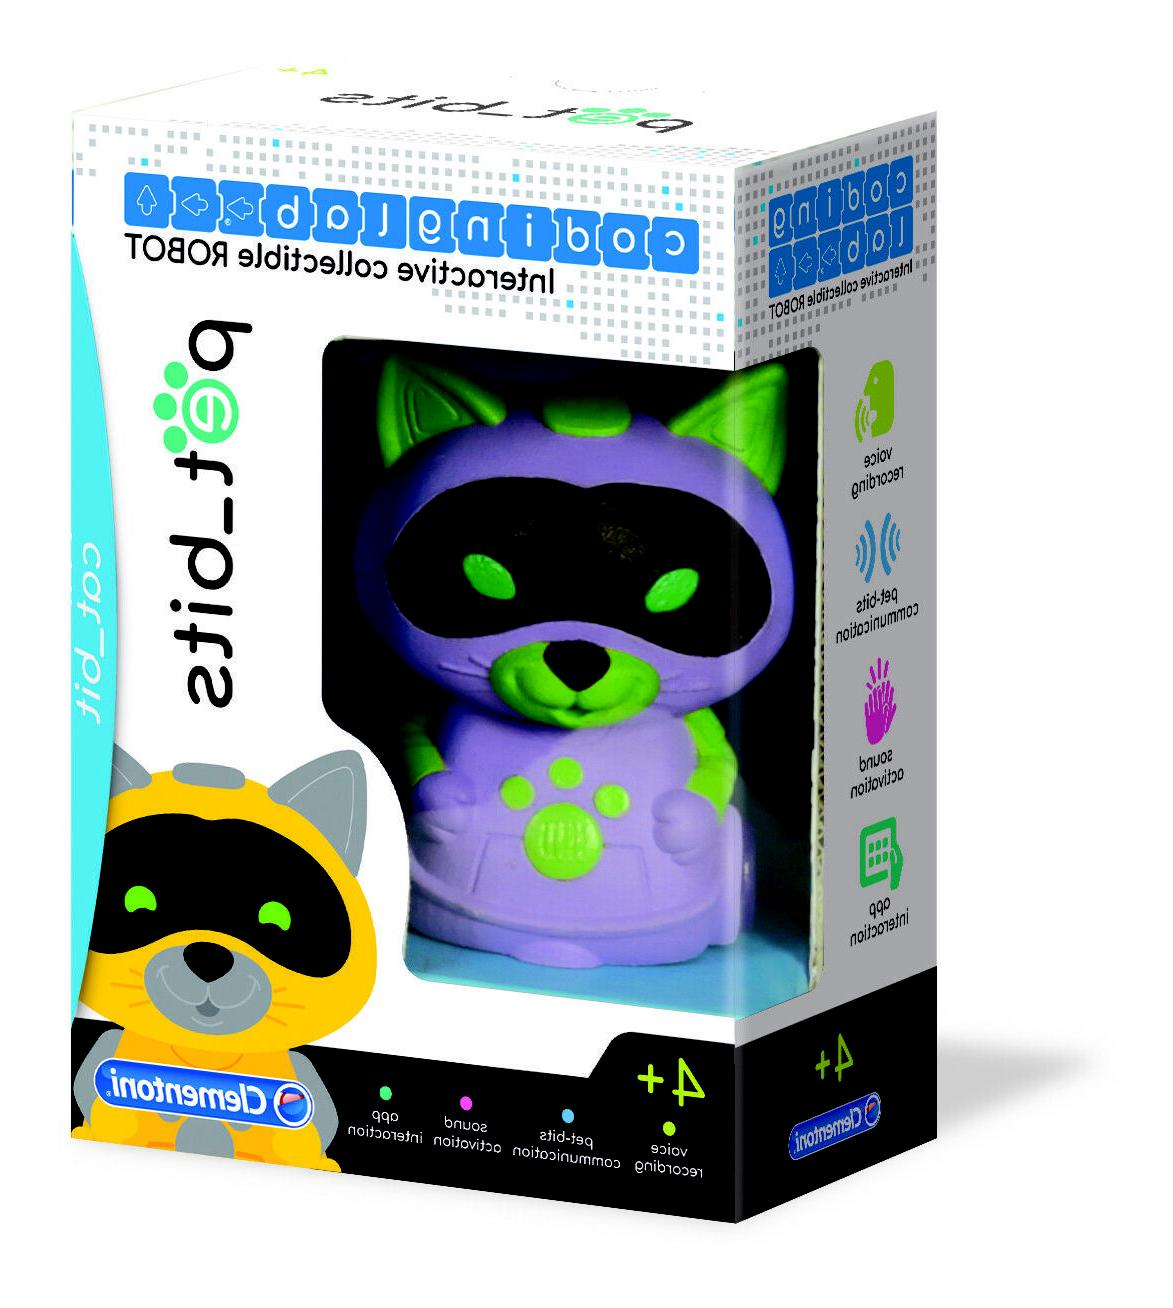 pet bits robot cat learn early coding